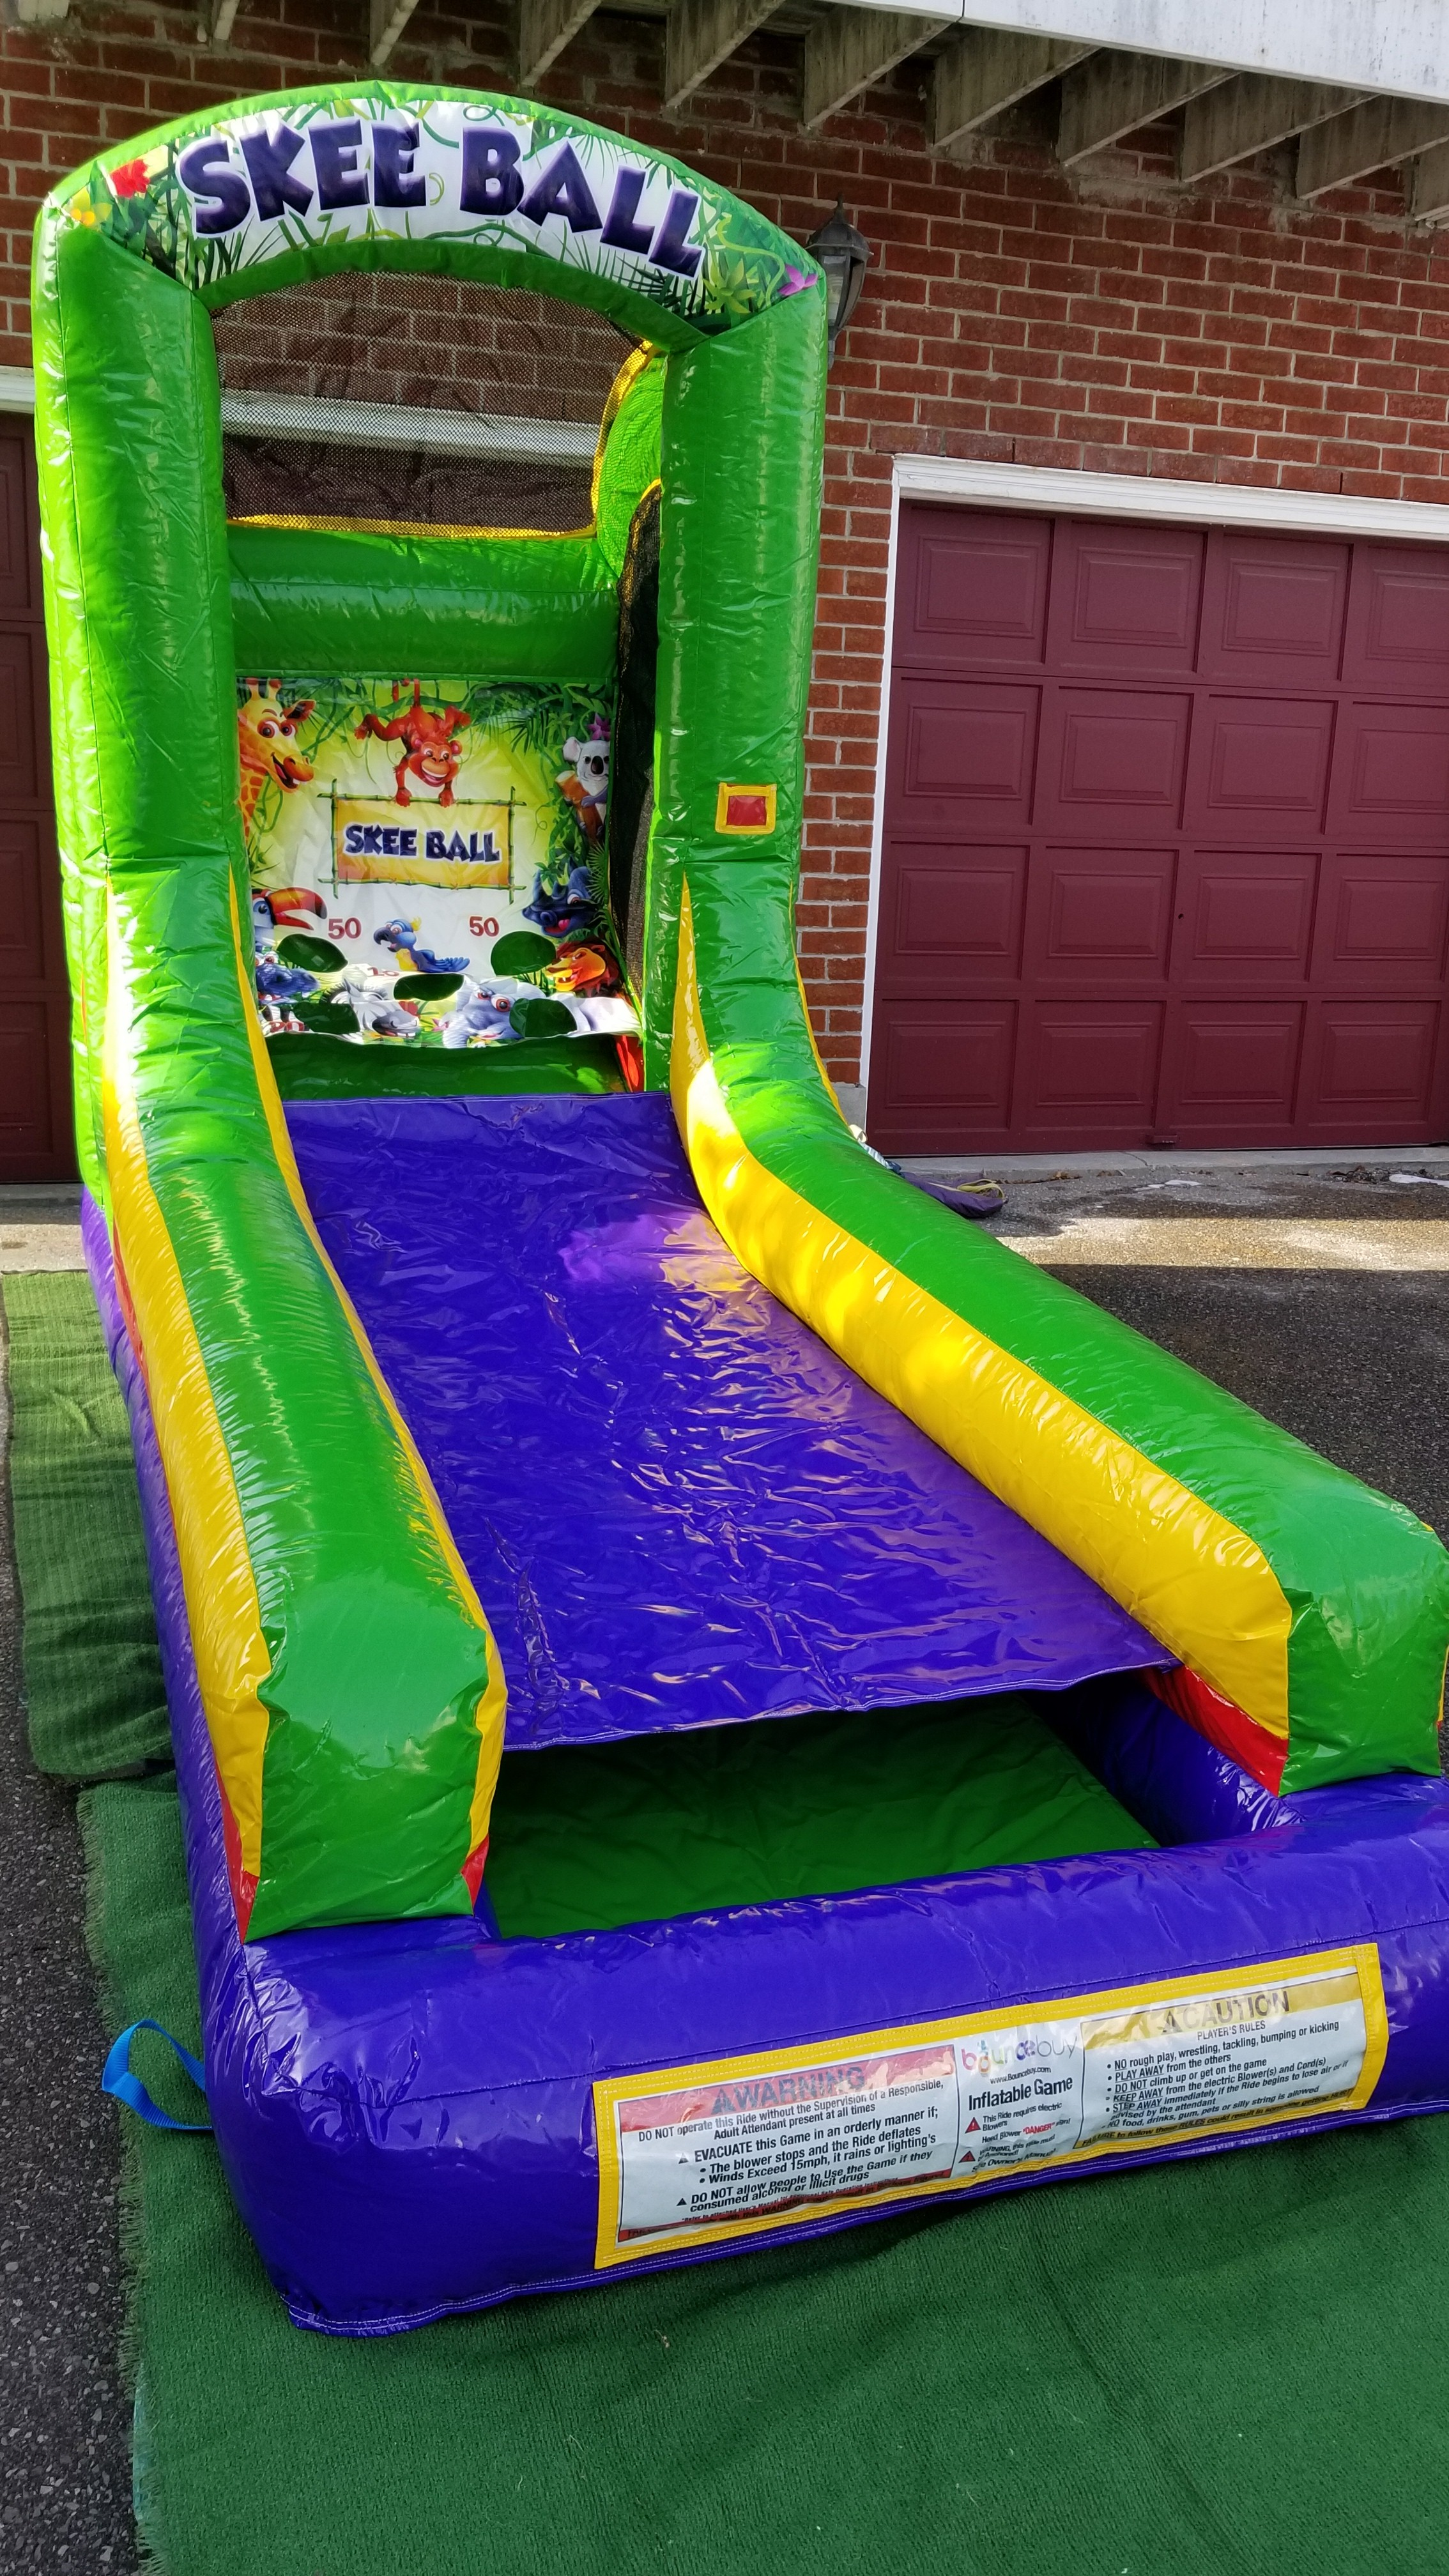 Inflatable Skee Ball 13 X 6 X 9 King Of The Castle